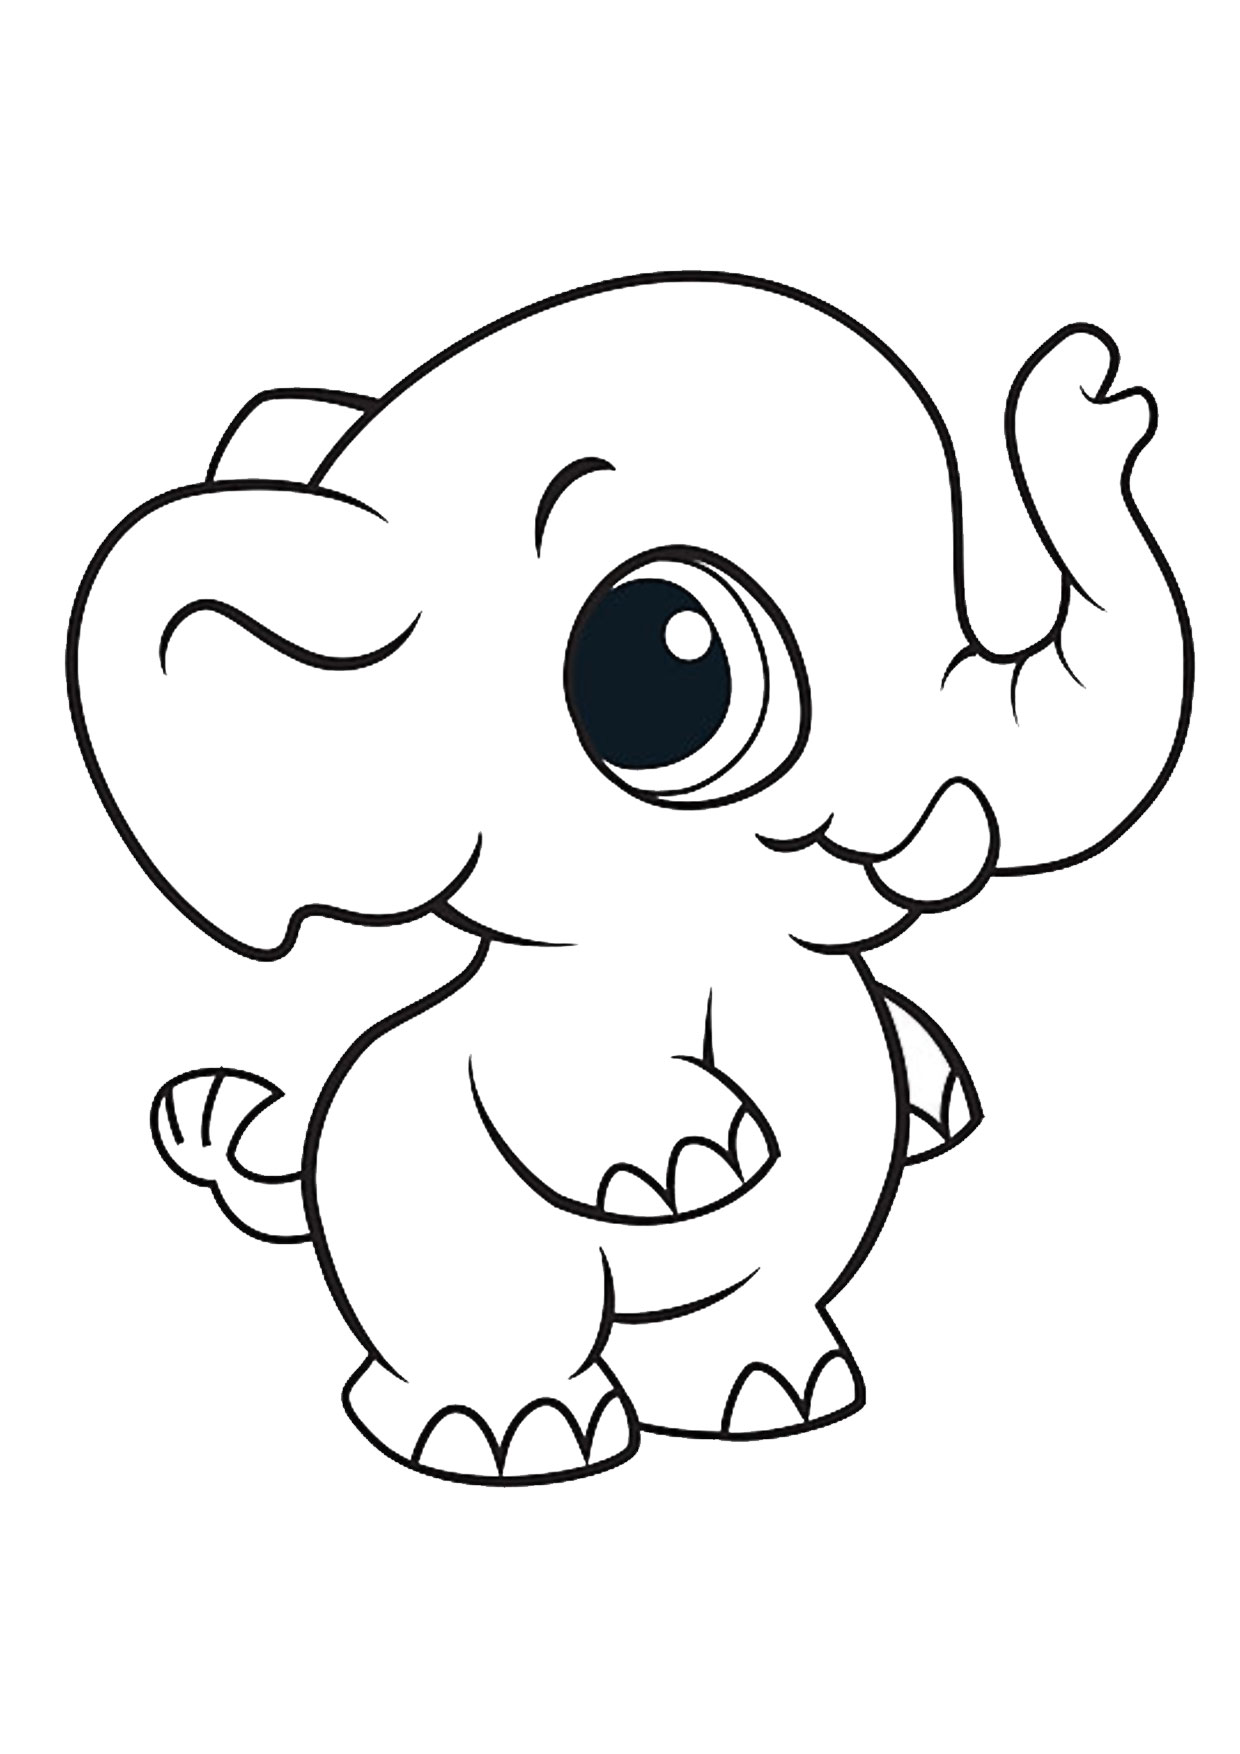 Disegno di Elefante Cartoon da colorare 01